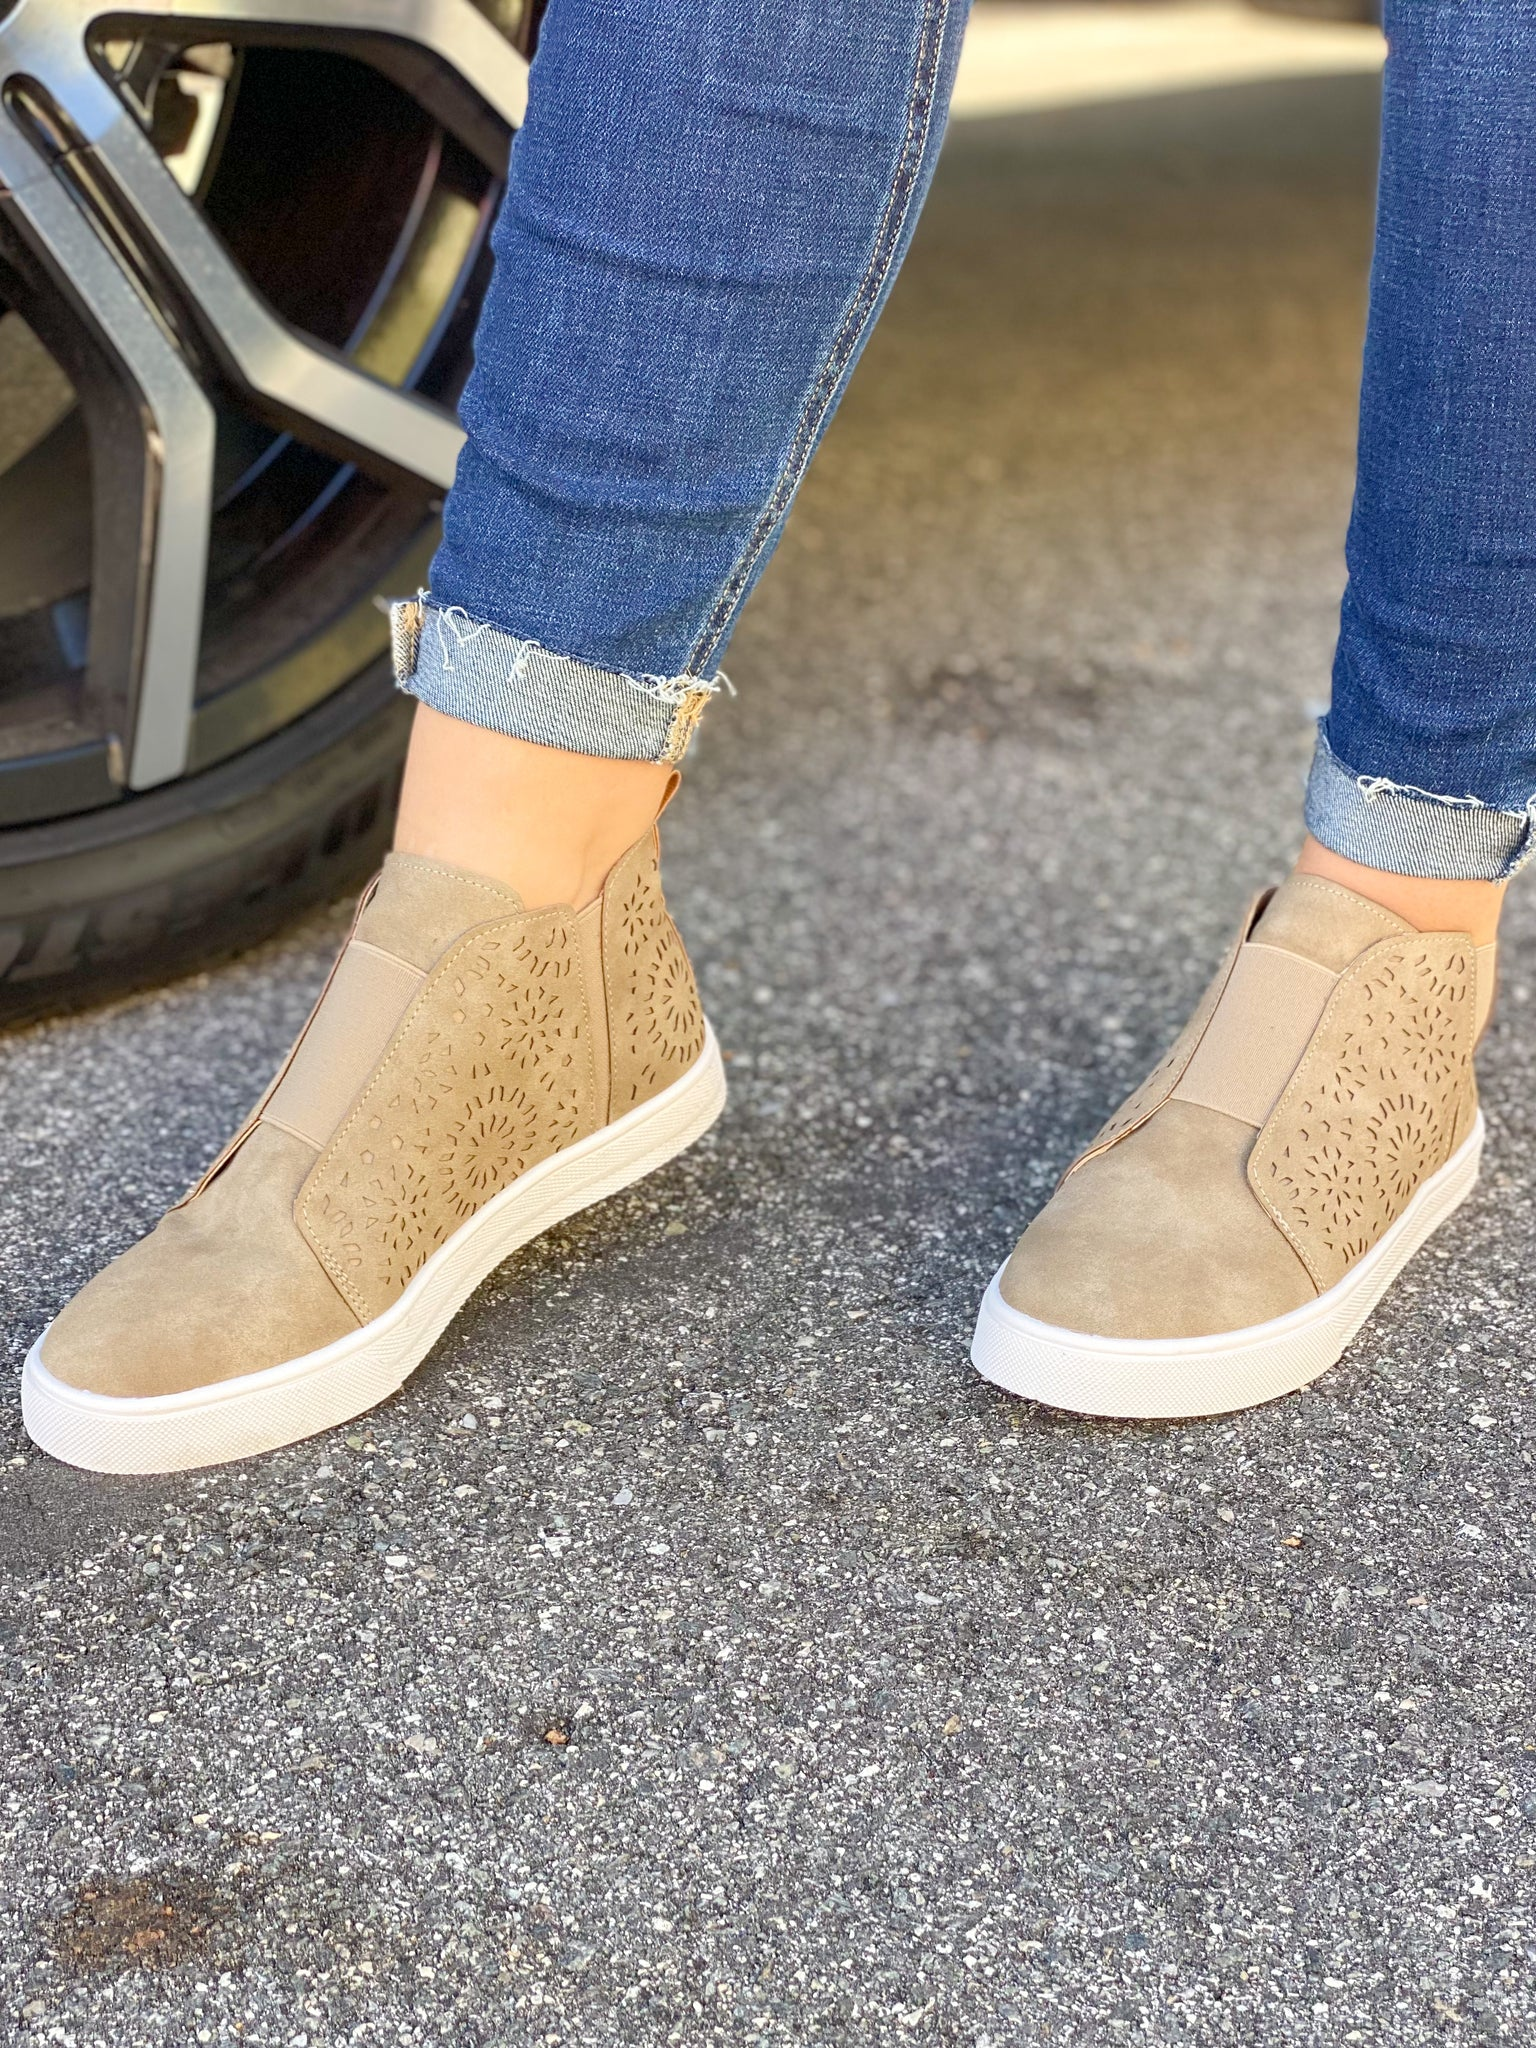 Paisley Suede Sneakers - Taupe